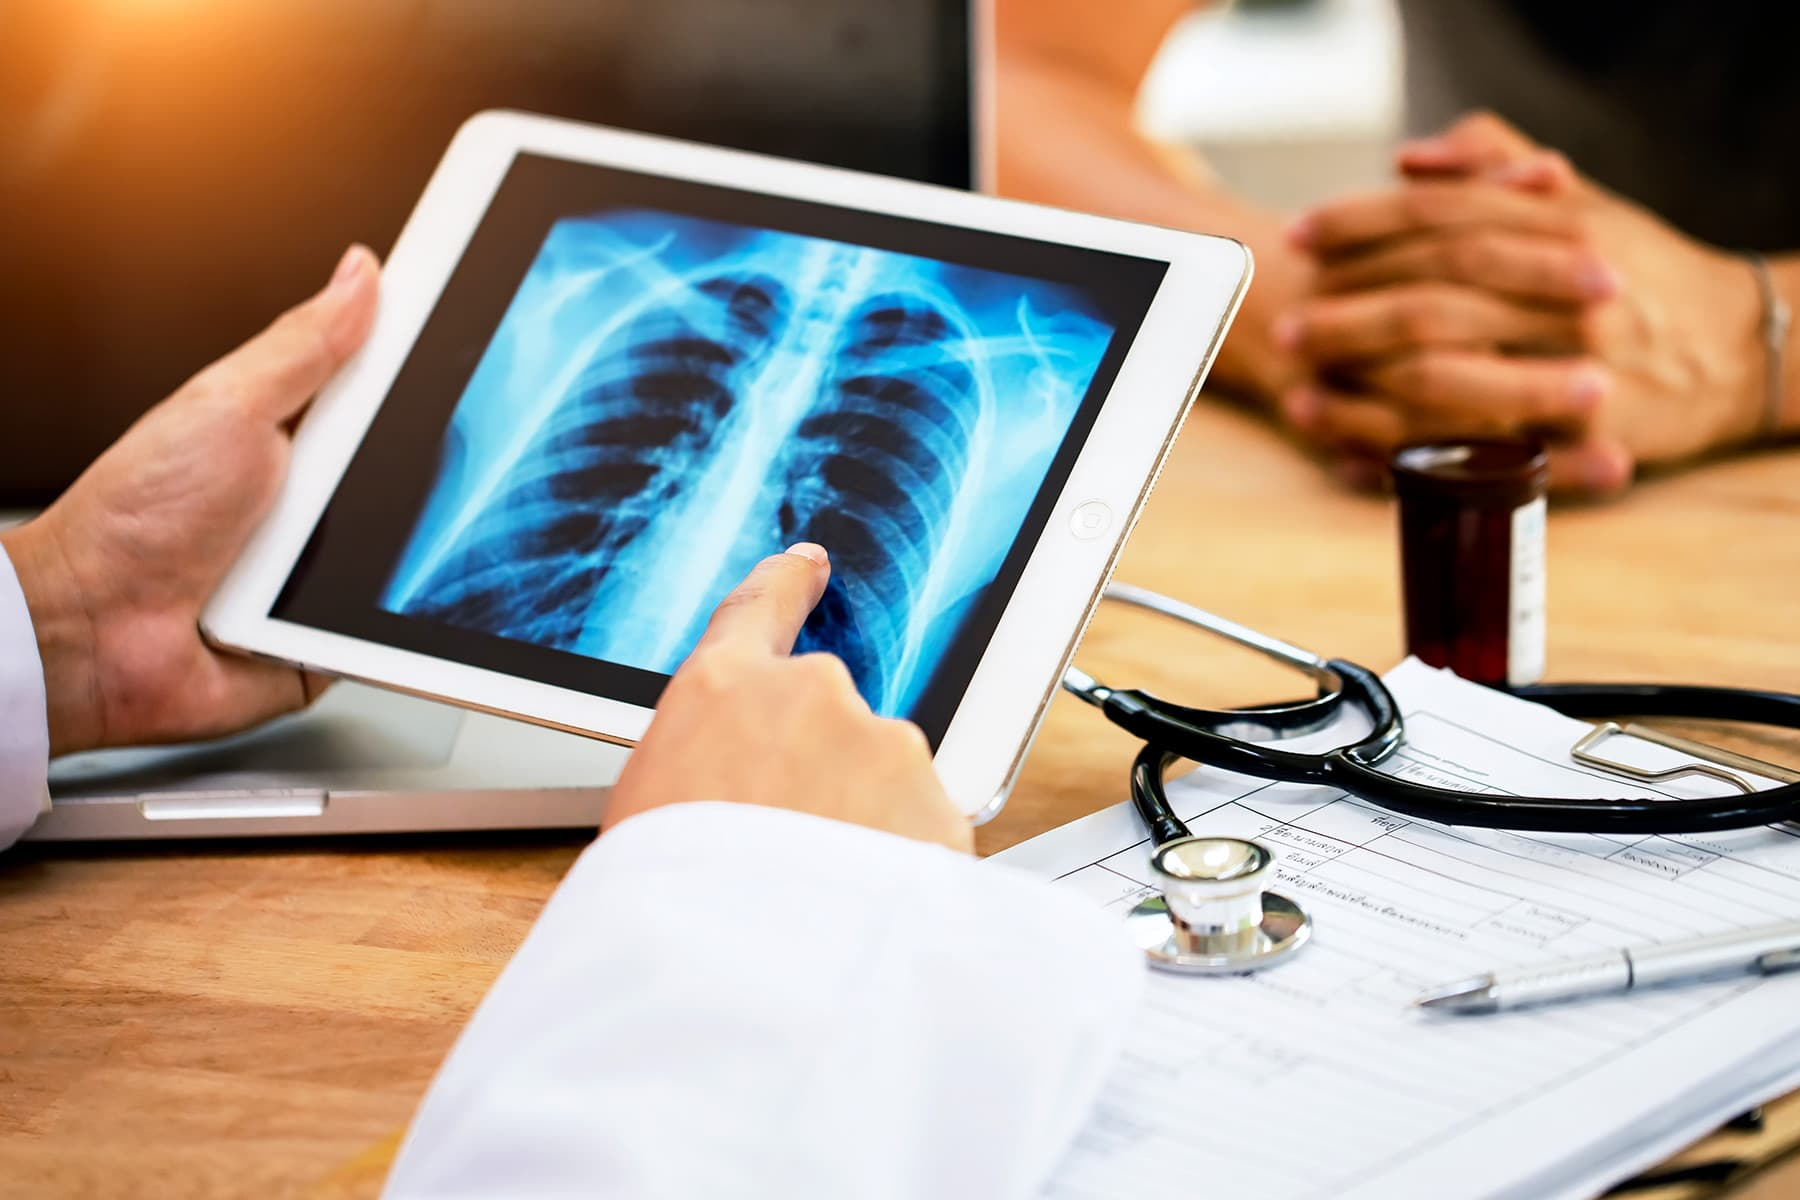 Targeted High-Dose Radiation Helps Fight Advanced Lung Cancer